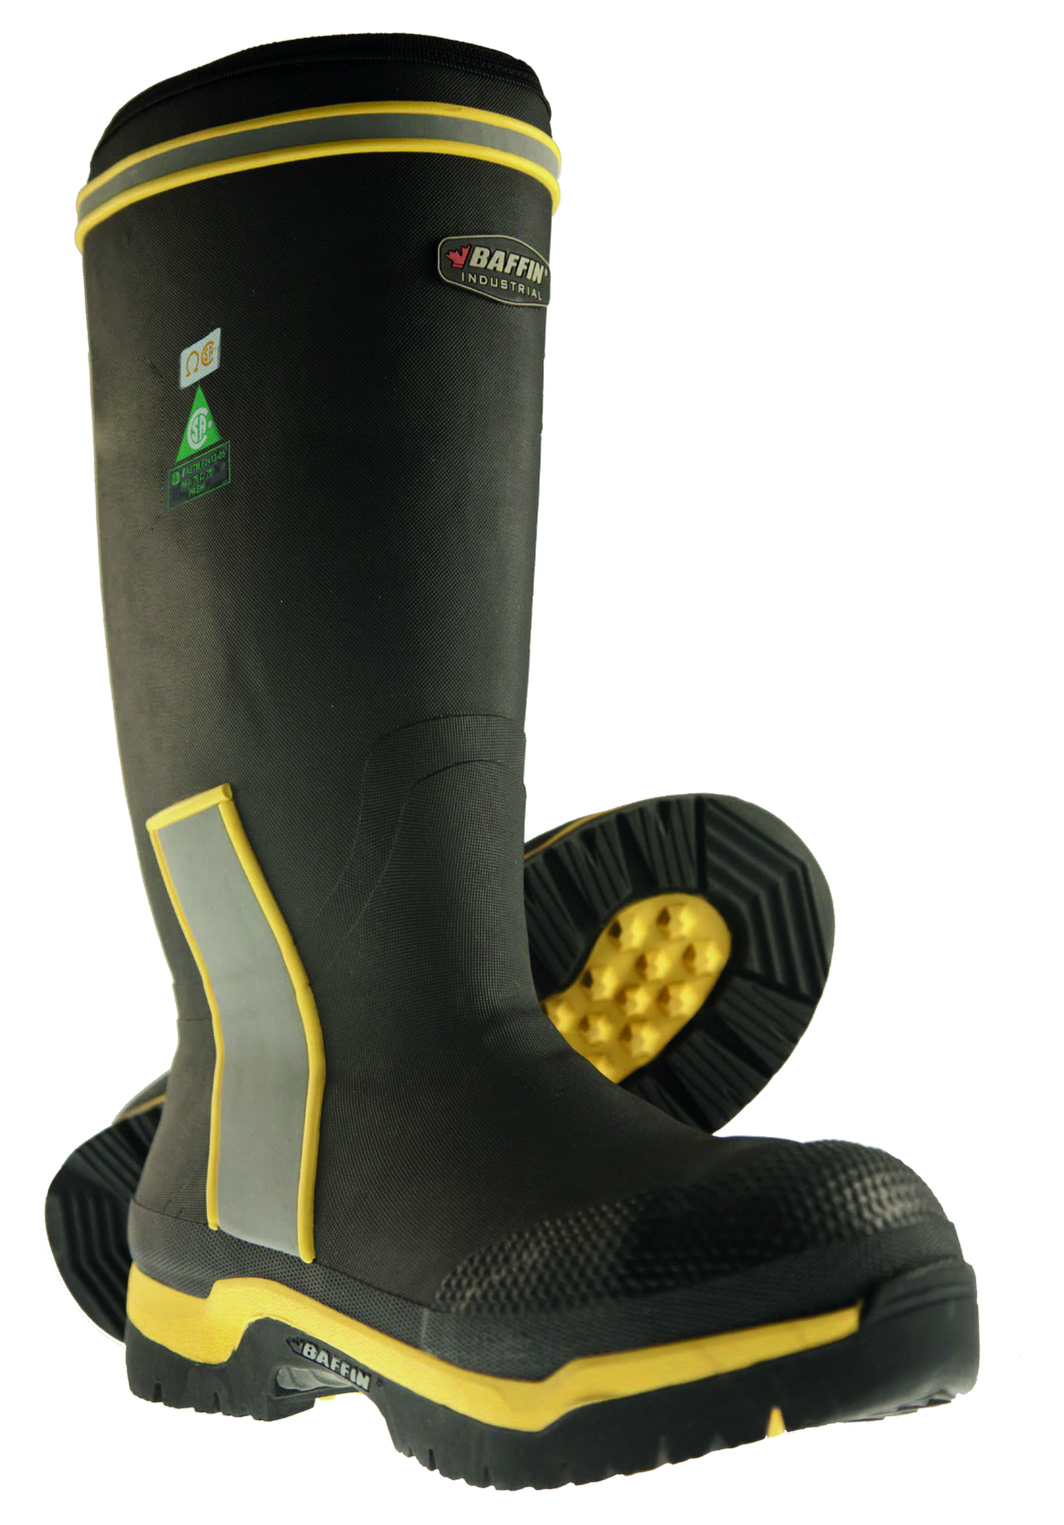 Baffin Cyclone Winter Csa Safety Boots